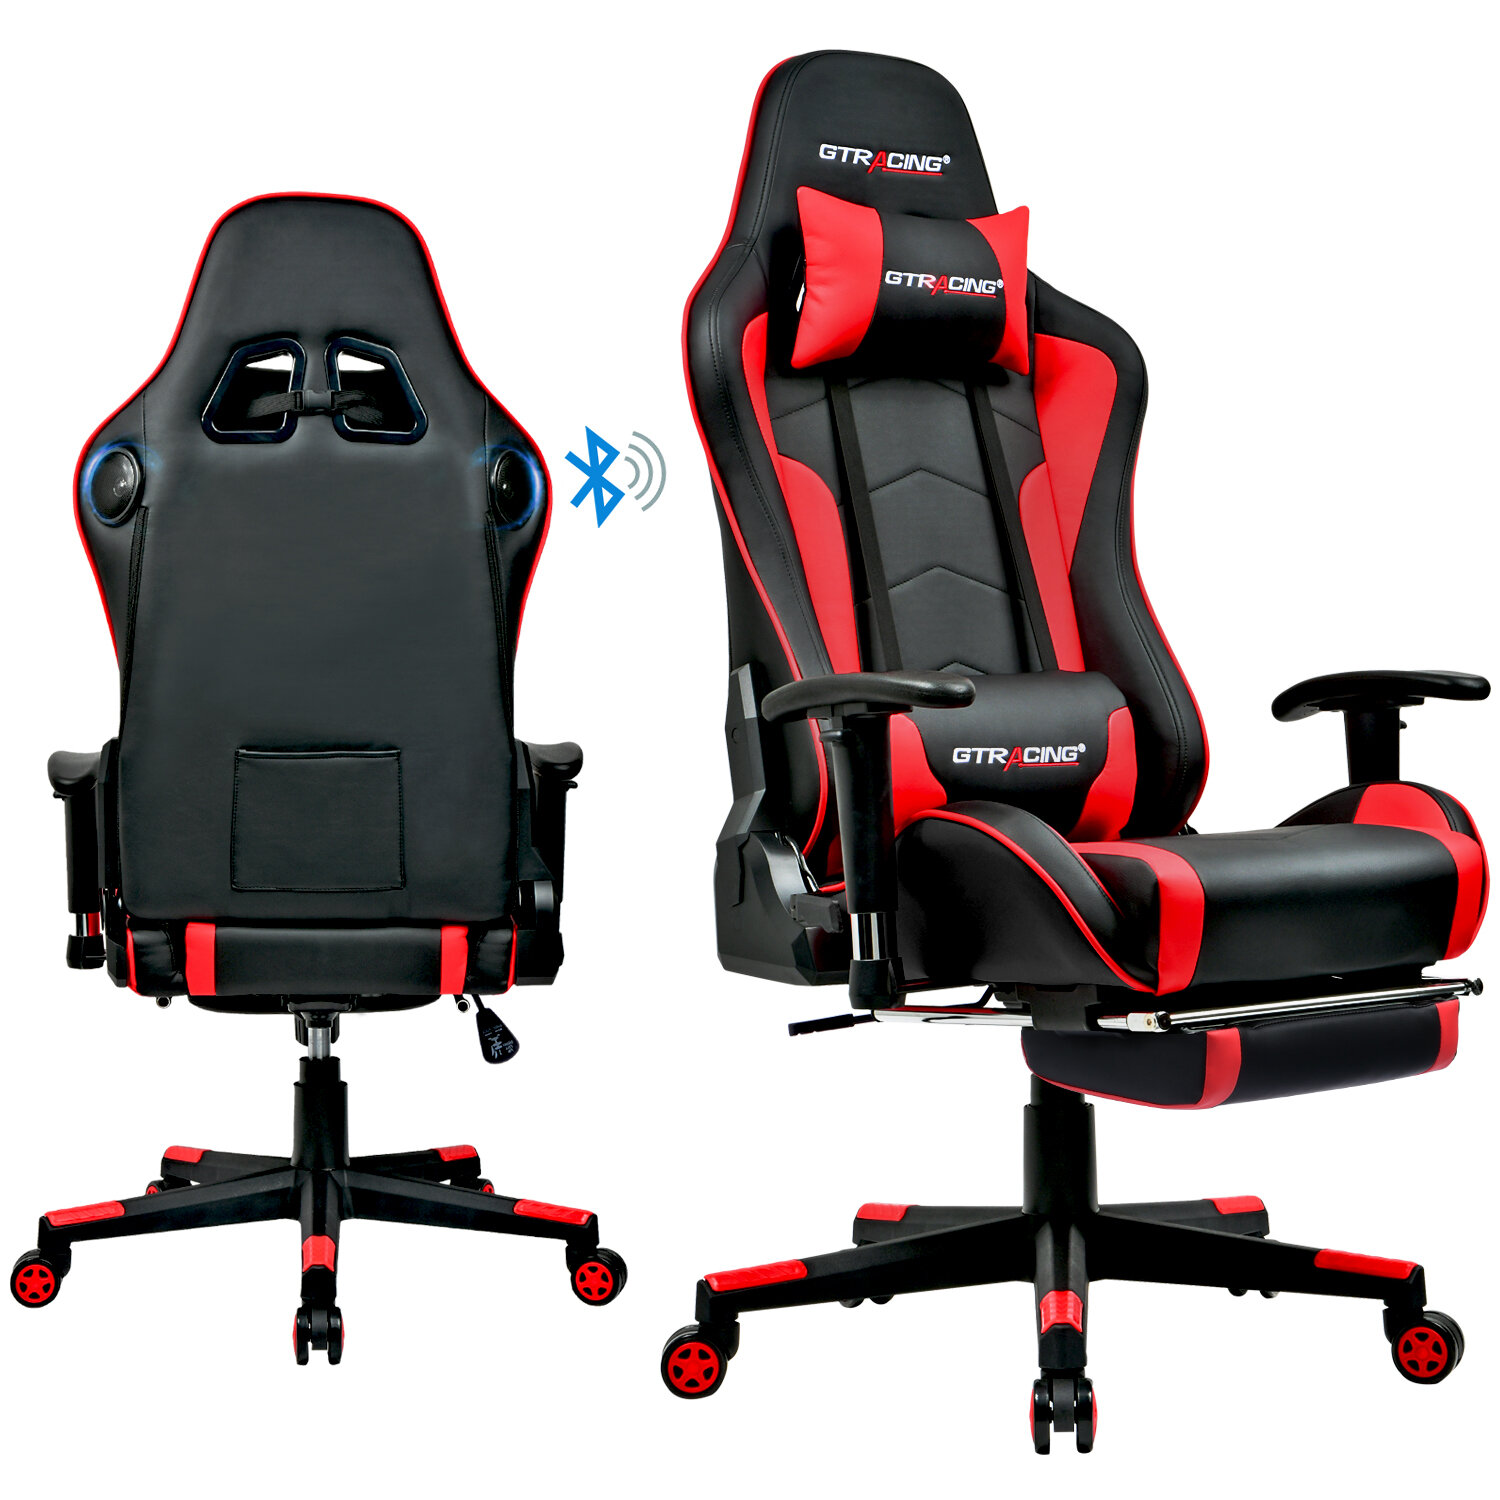 300lbs - 400lbs Speaker System Gaming Chairs You'll Love in 2021